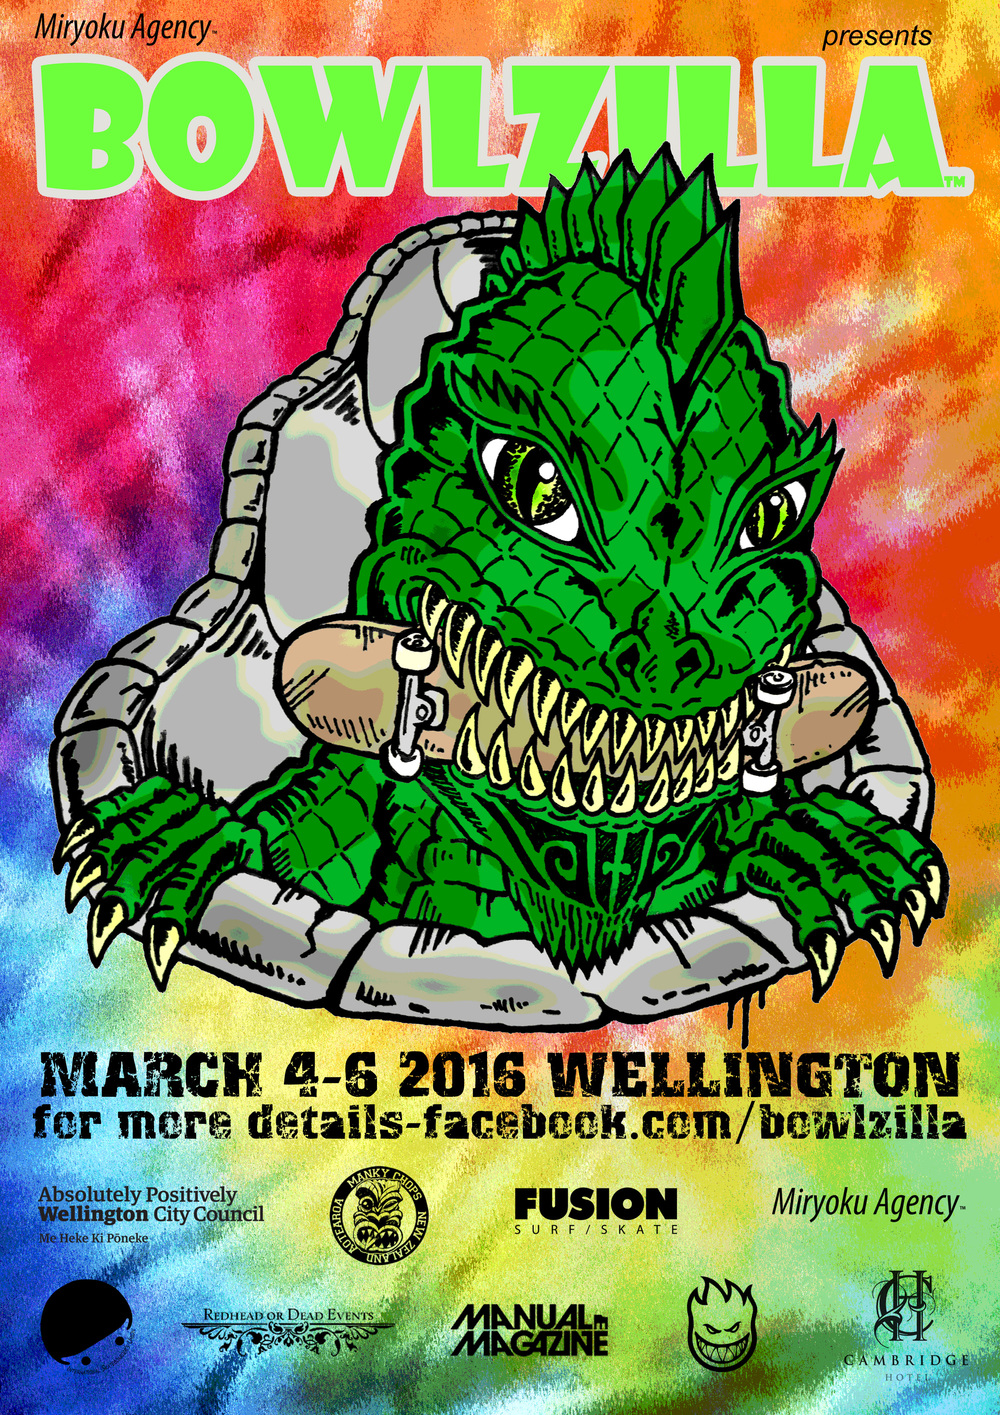 BOWLZILLA Wellington 2016